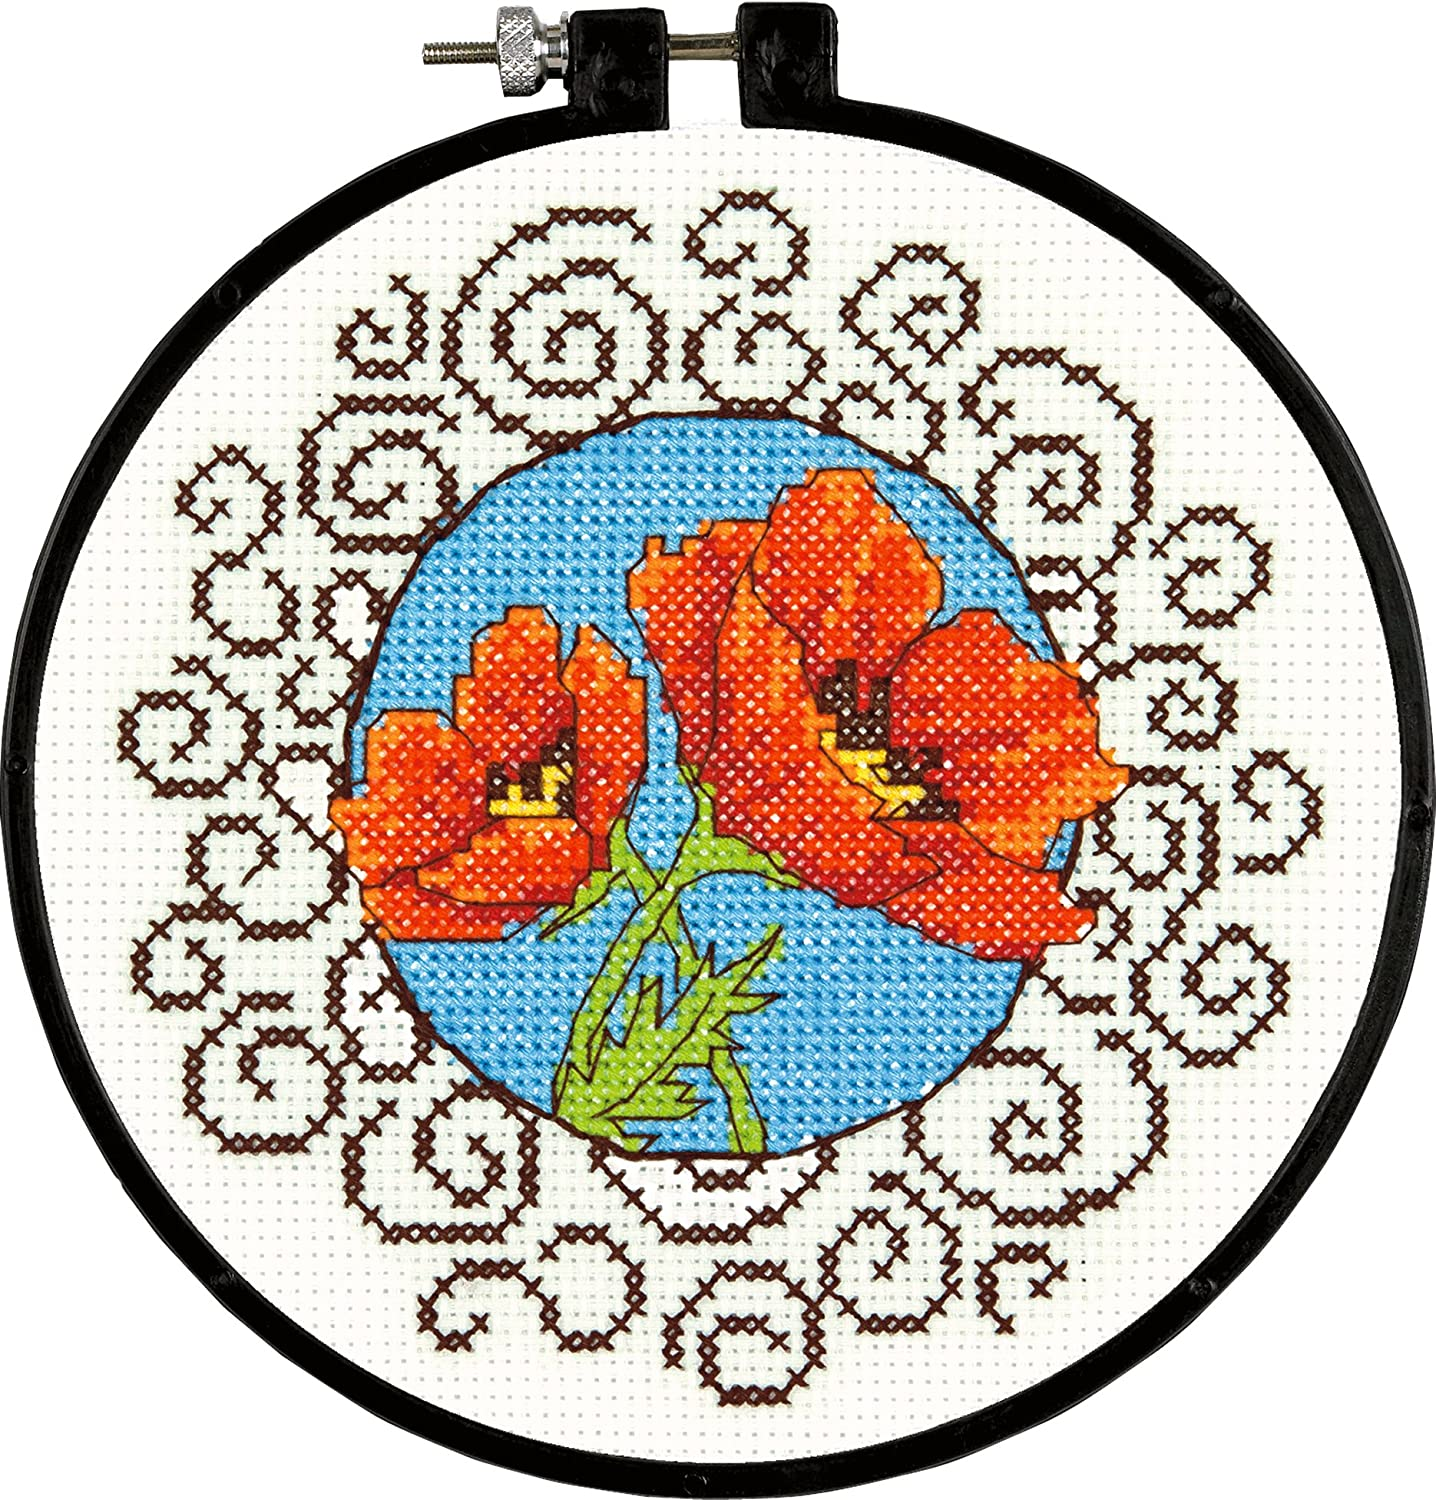 Dimensions Crafts NeedleCrafts Counted Cross Stitch, Poppies EKS 72-73825